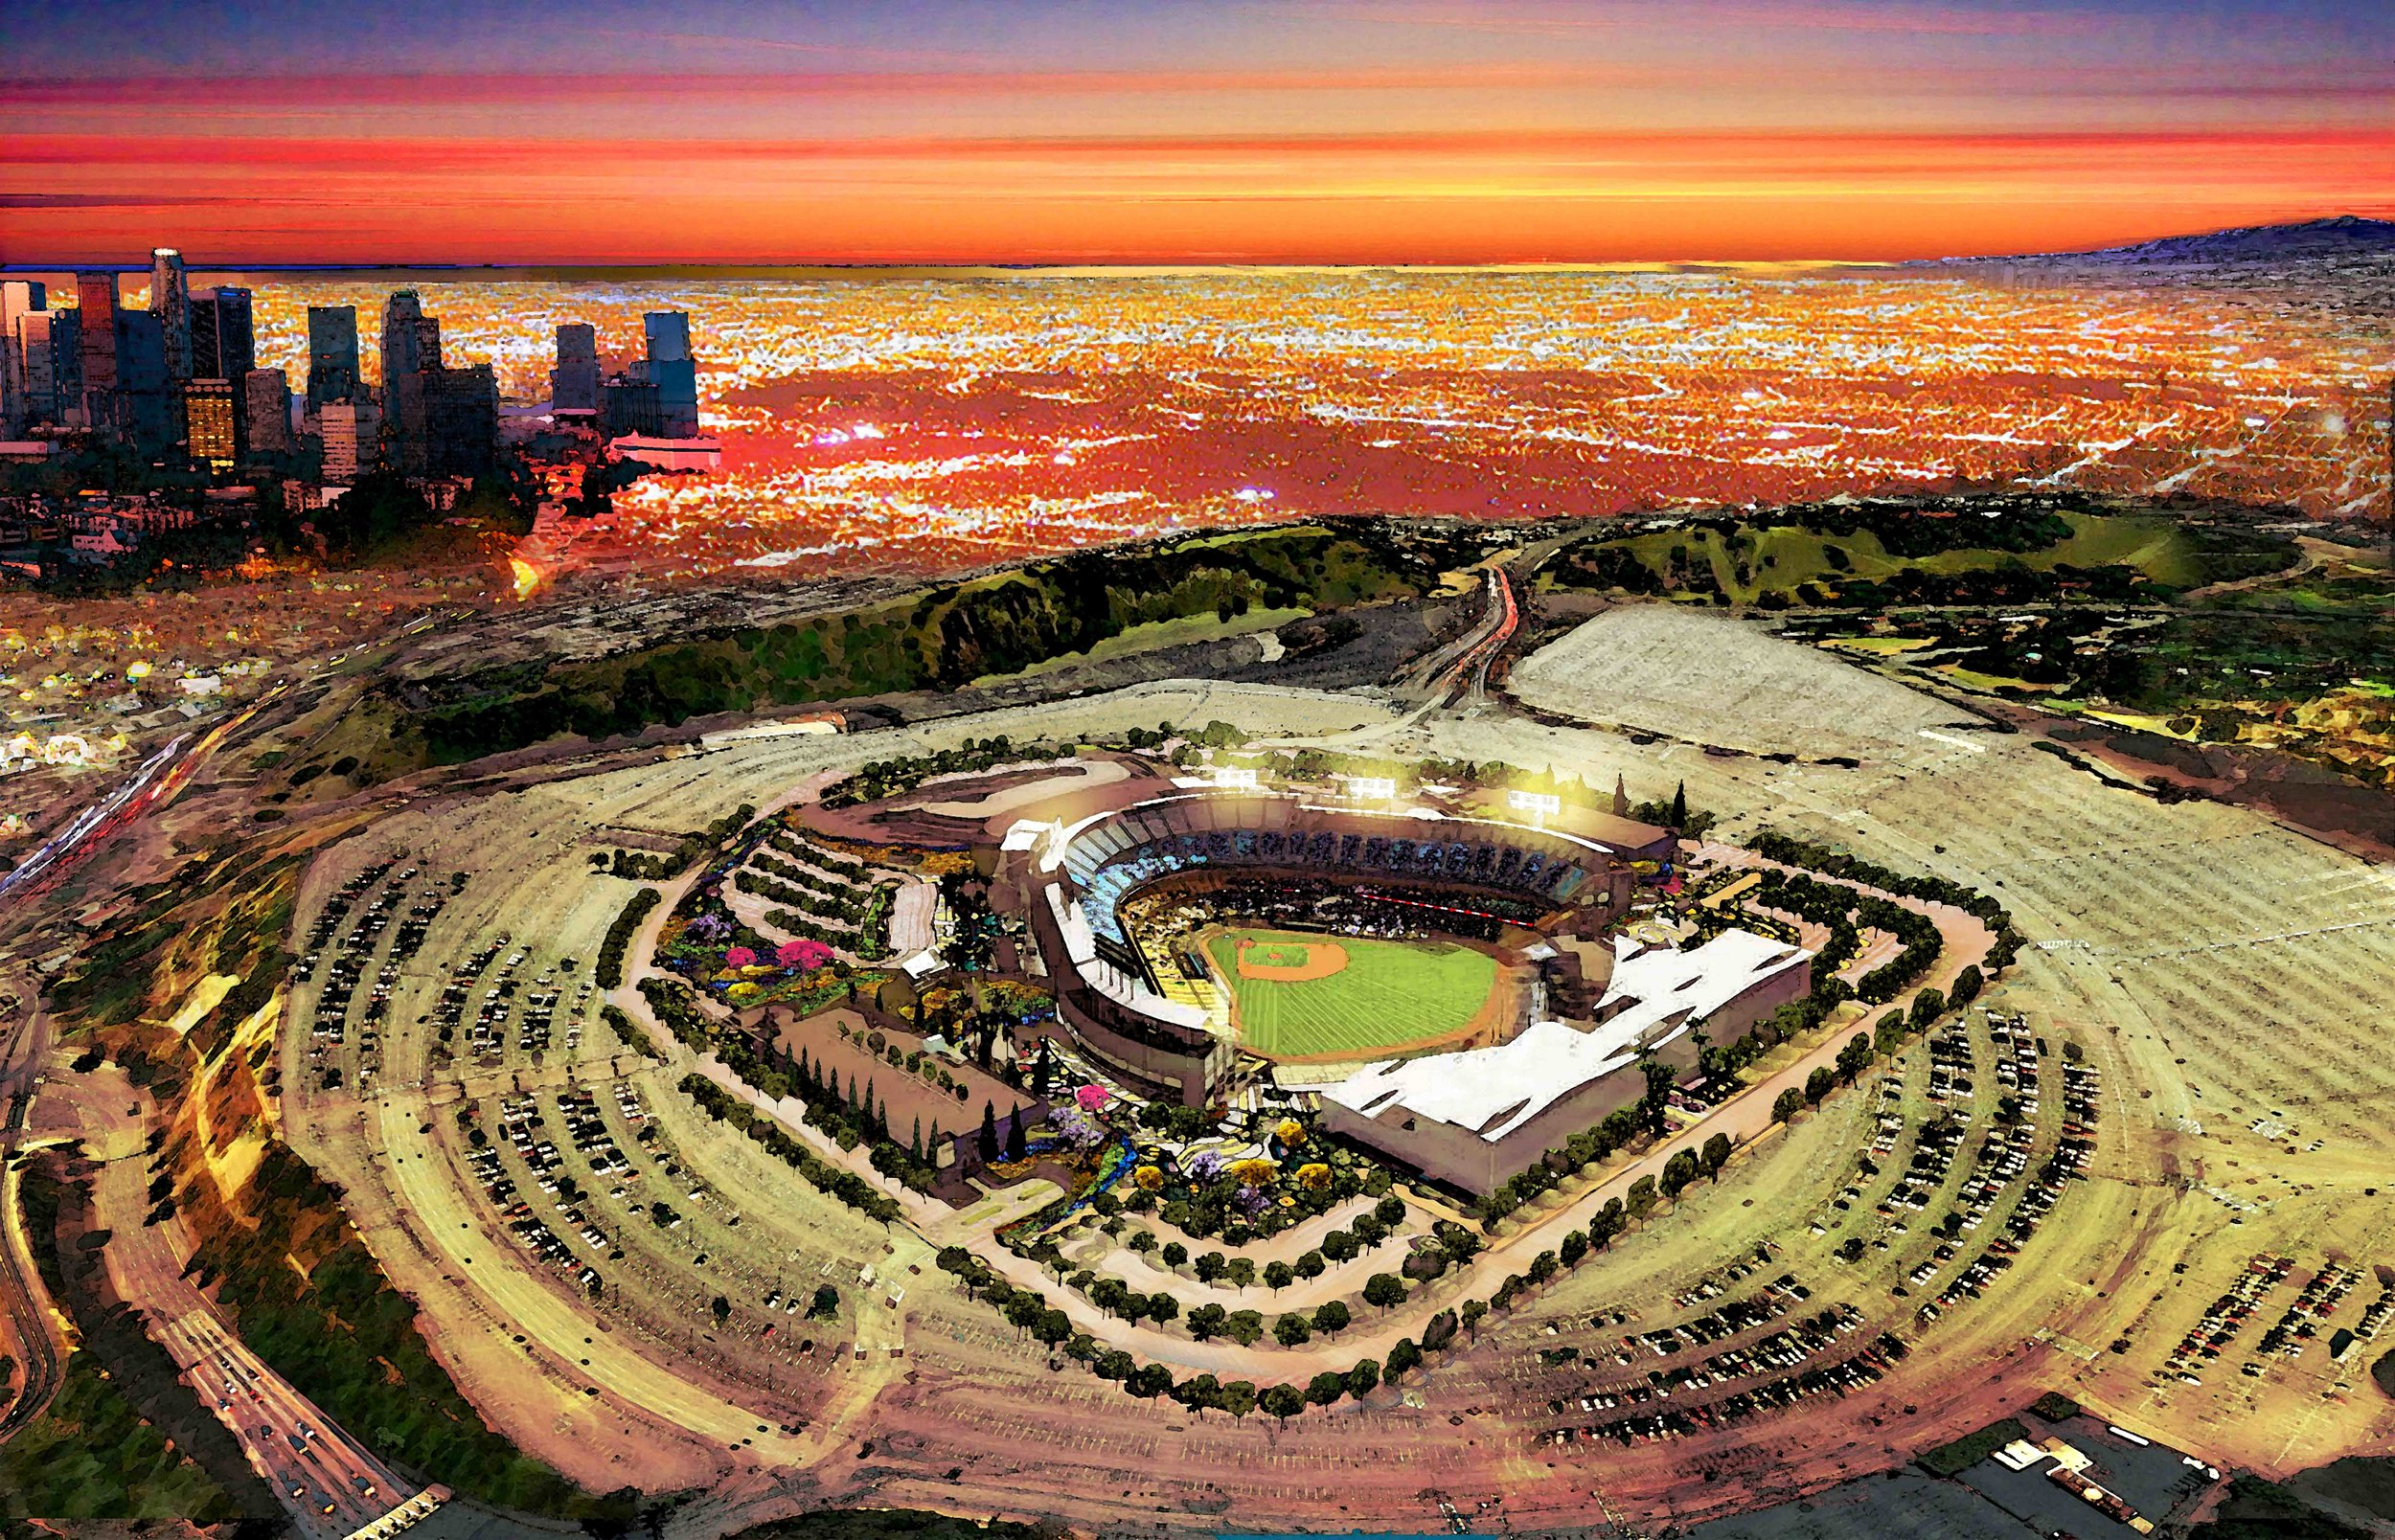 GEN_147_DODGER3.Aerial 3_update_city0000 H20 FINAL copy.jpg